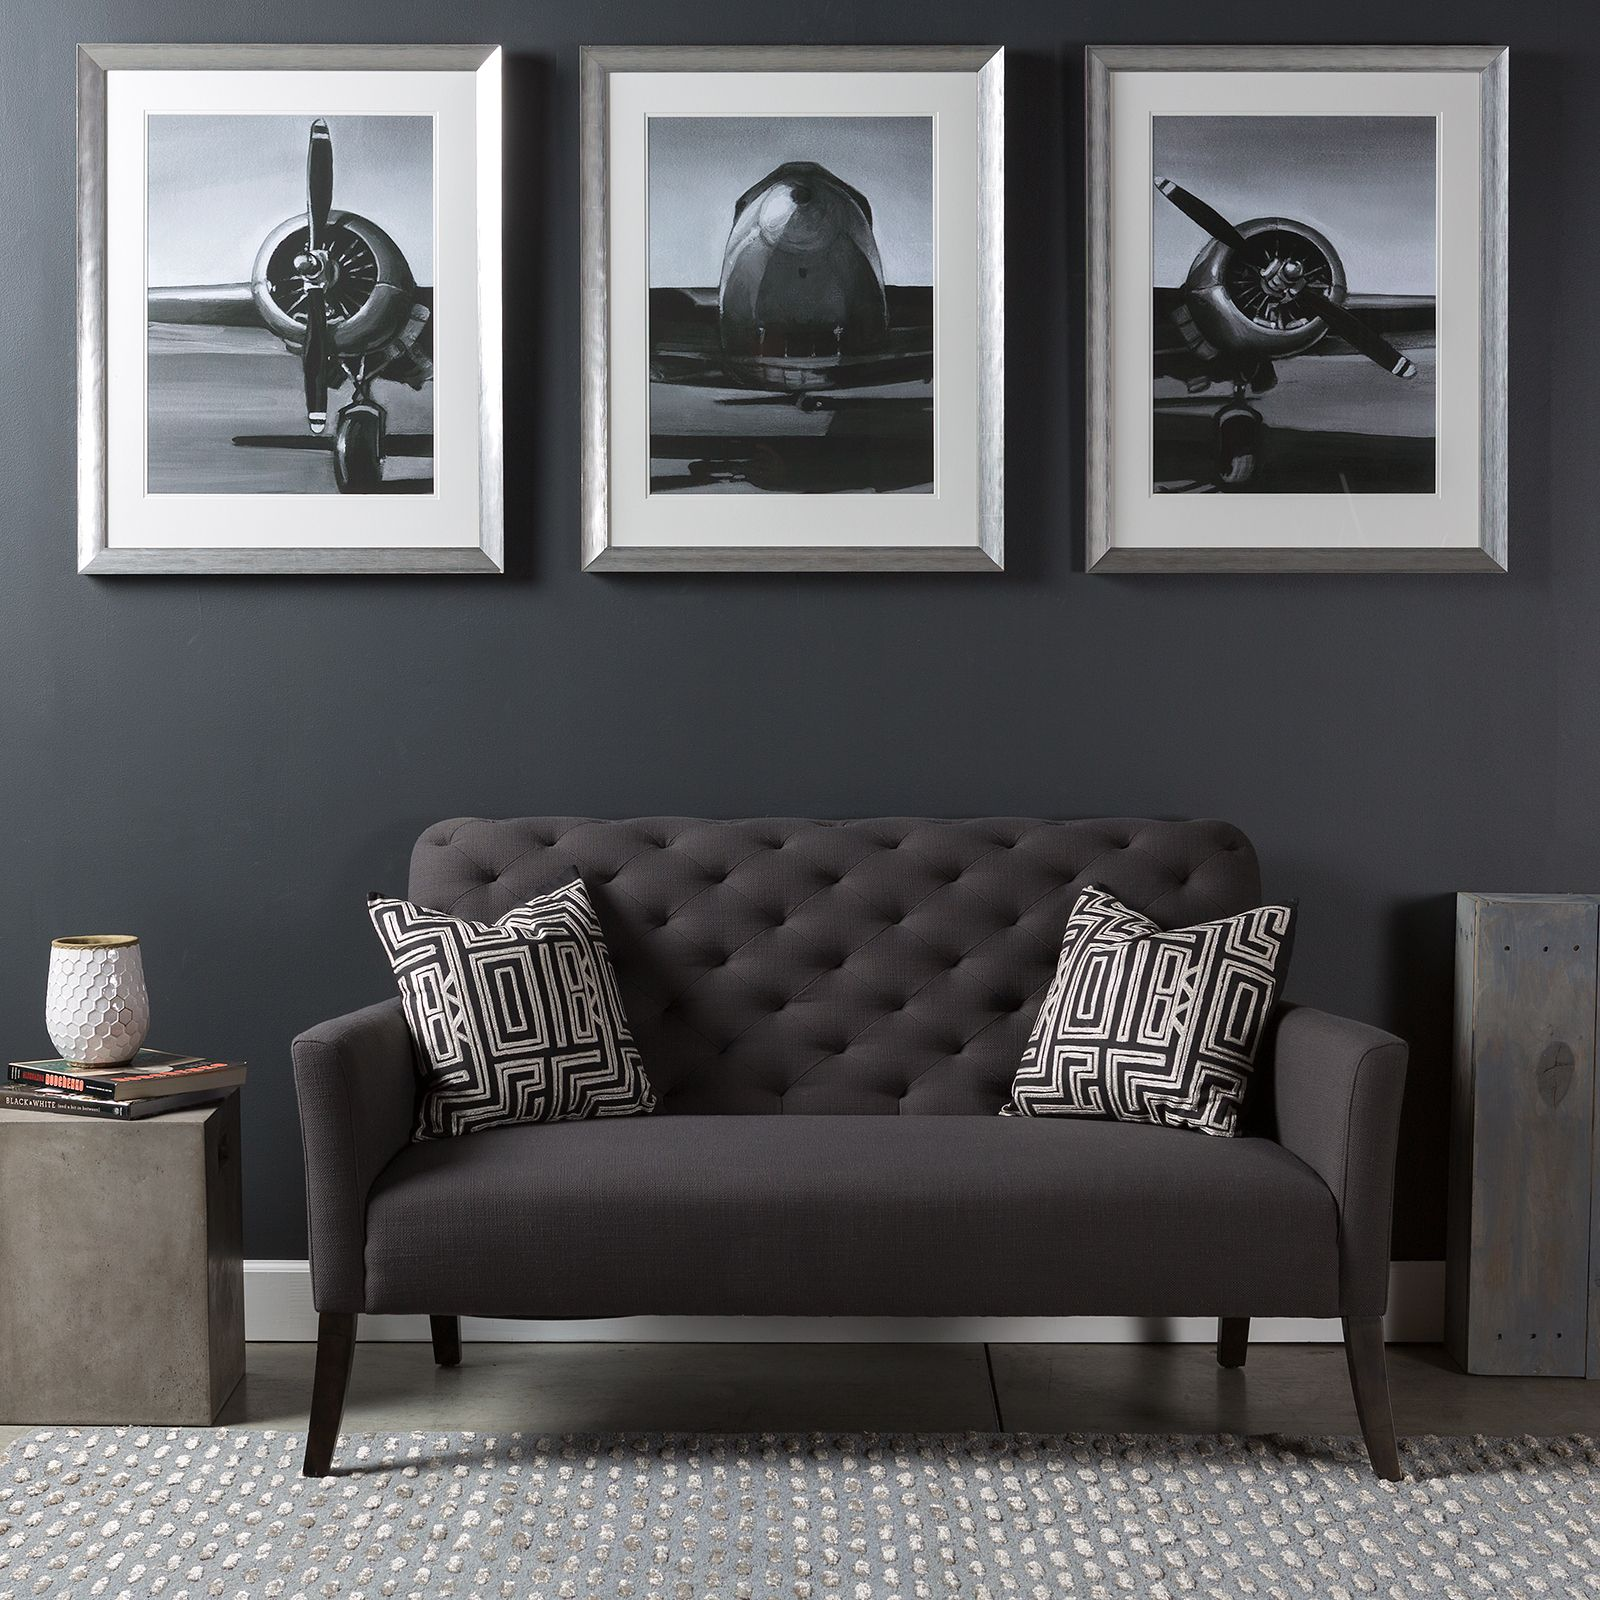 Triptych Wall Art Piece With A Modern Industrial Flare A